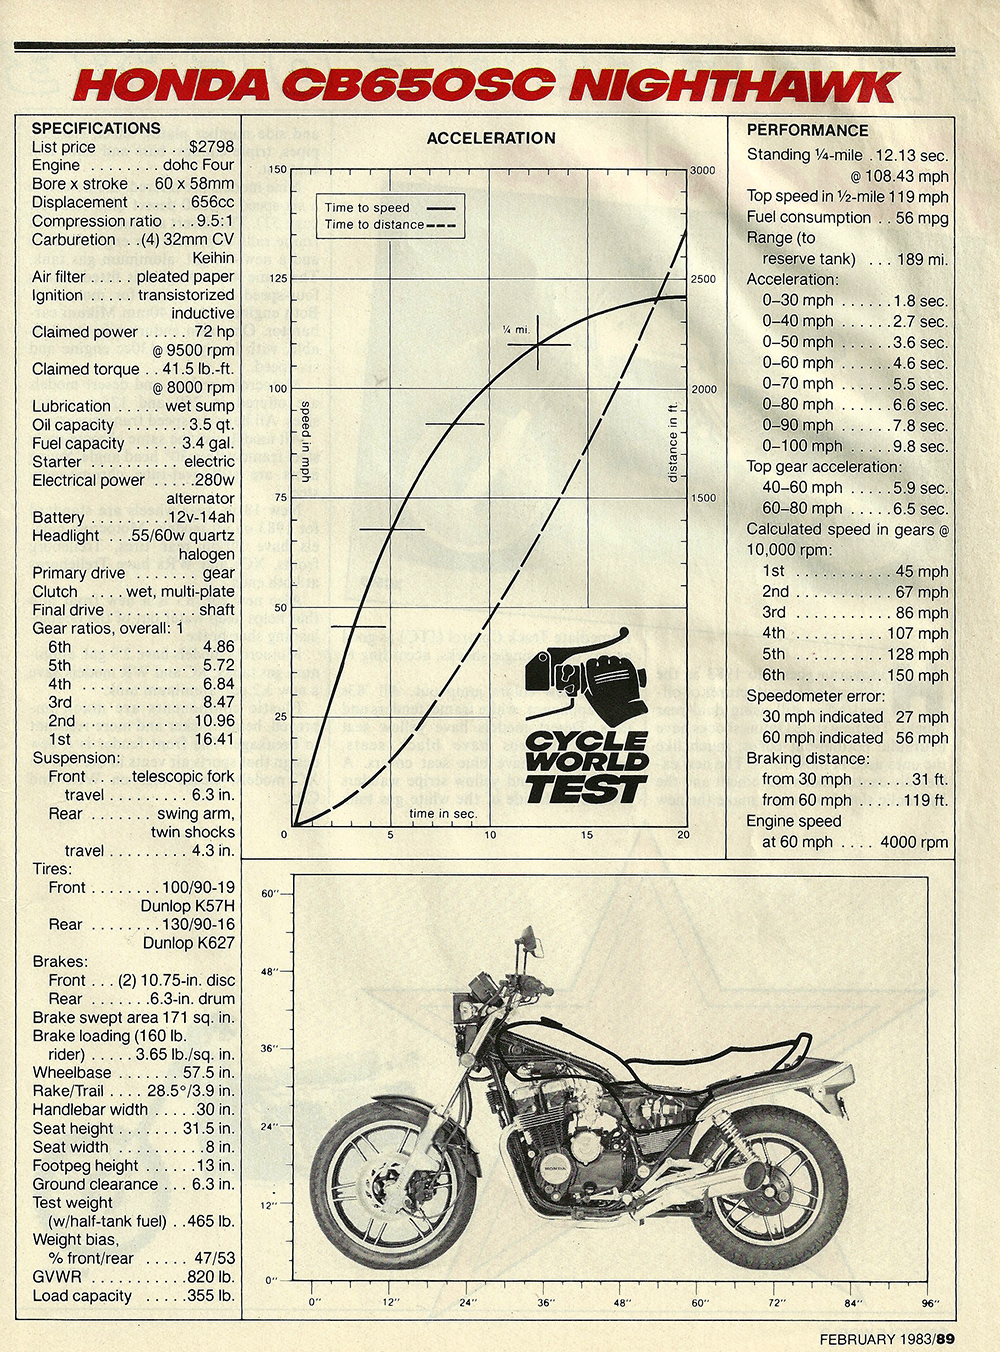 1983 Honda CB650SC Nighthawk road test 06.jpg